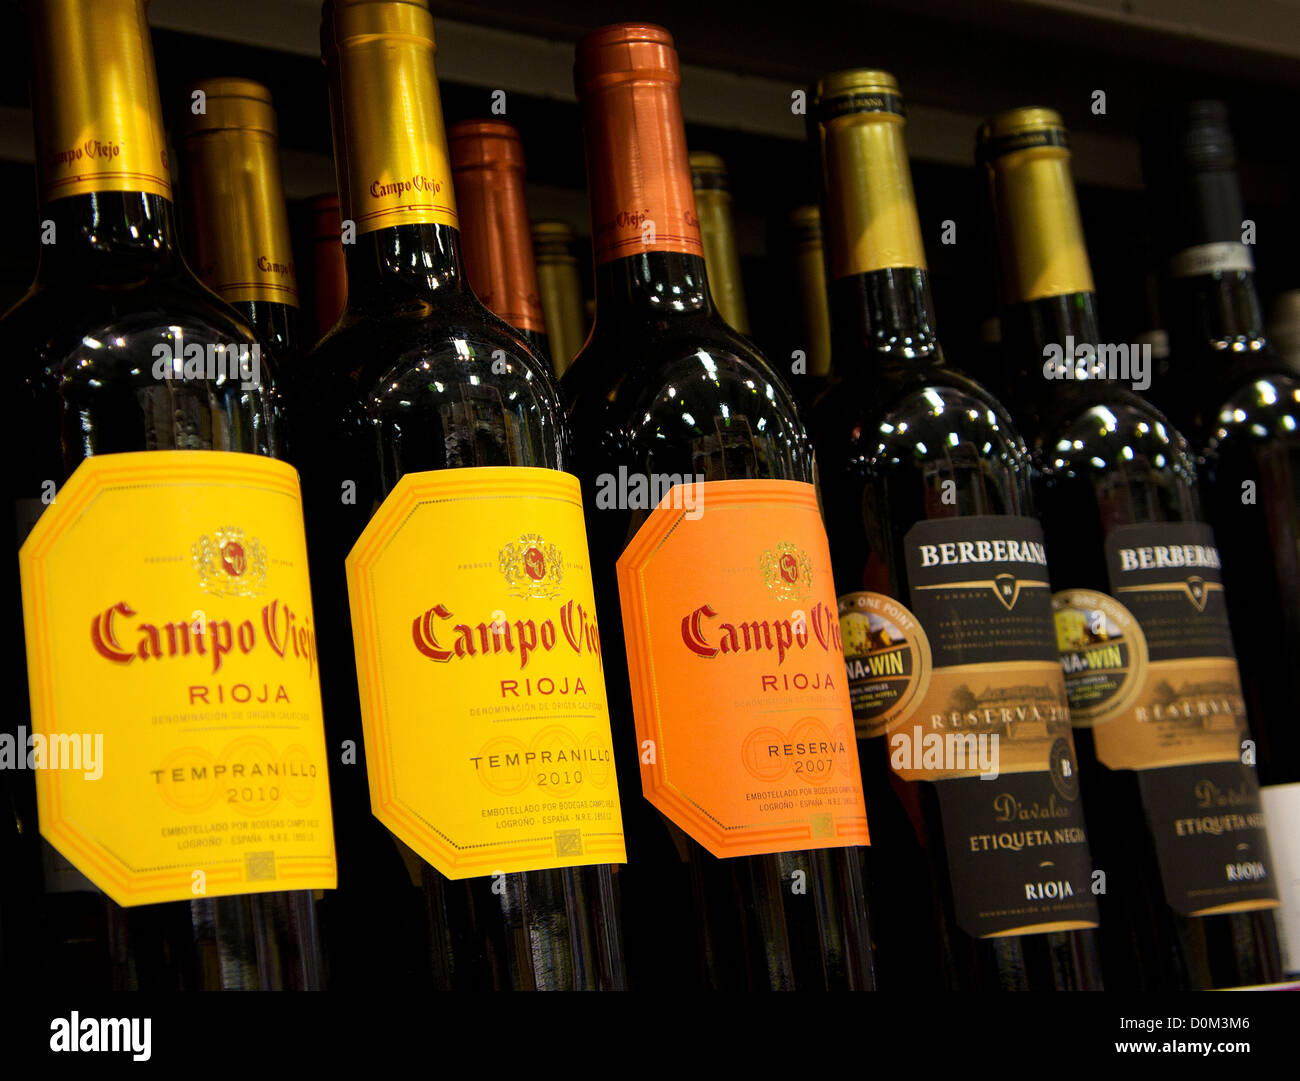 bottles of spanish rioja wine in a uk supermarket Stock Photo, Royalty Free Image: 52073062